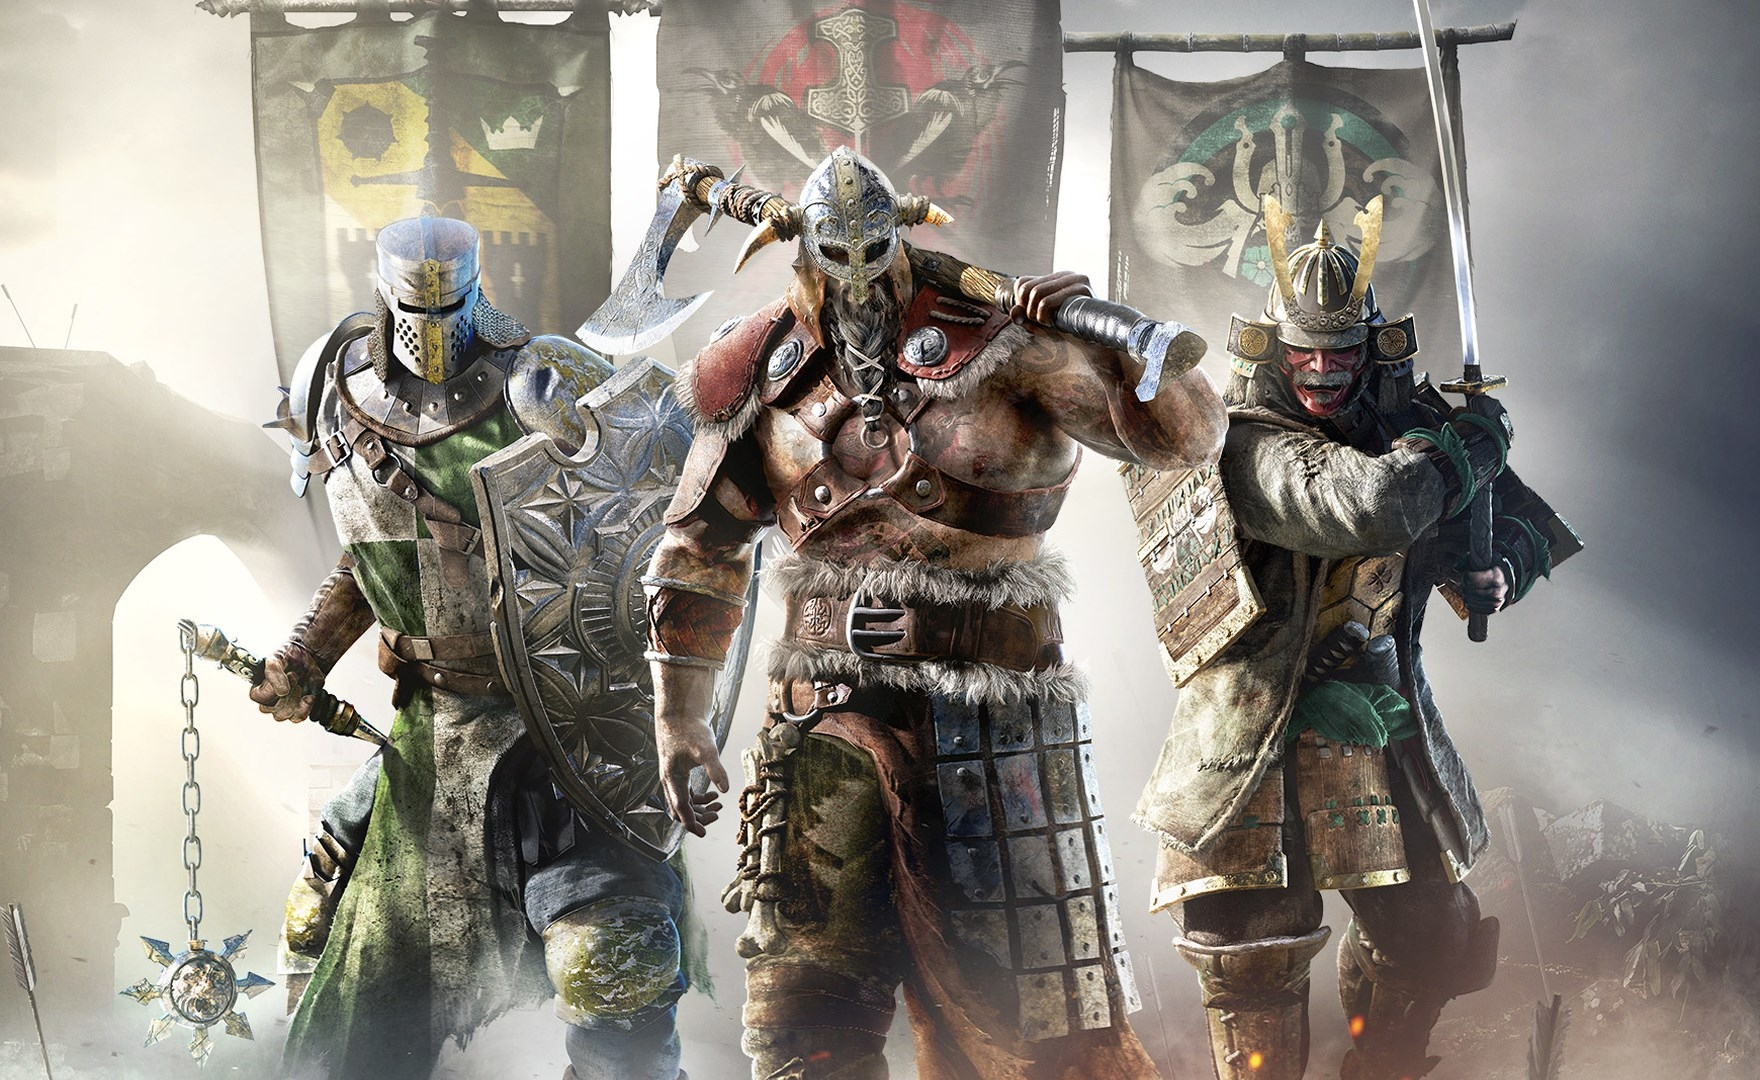 For Honor gratis per un periodo di tempo limitato